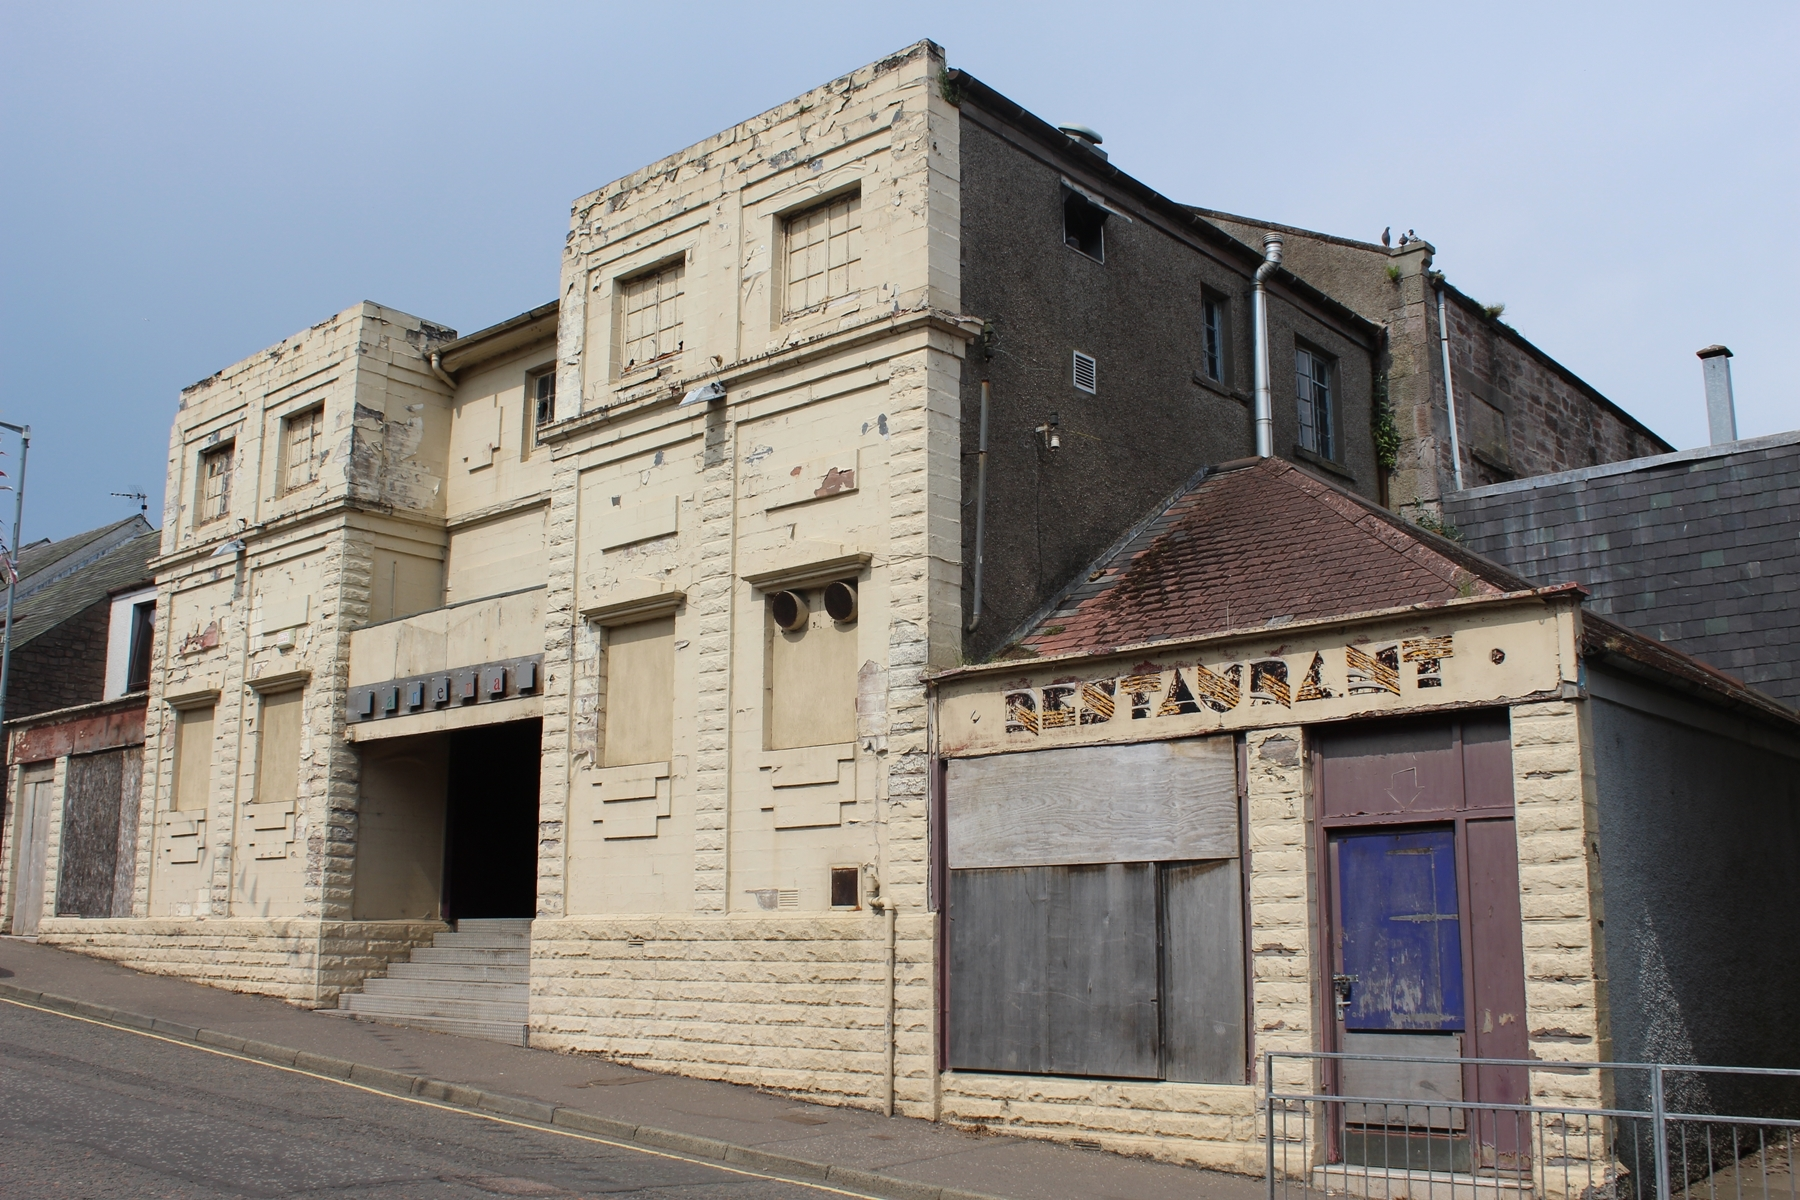 The former Flicks nightclub in Brechin.